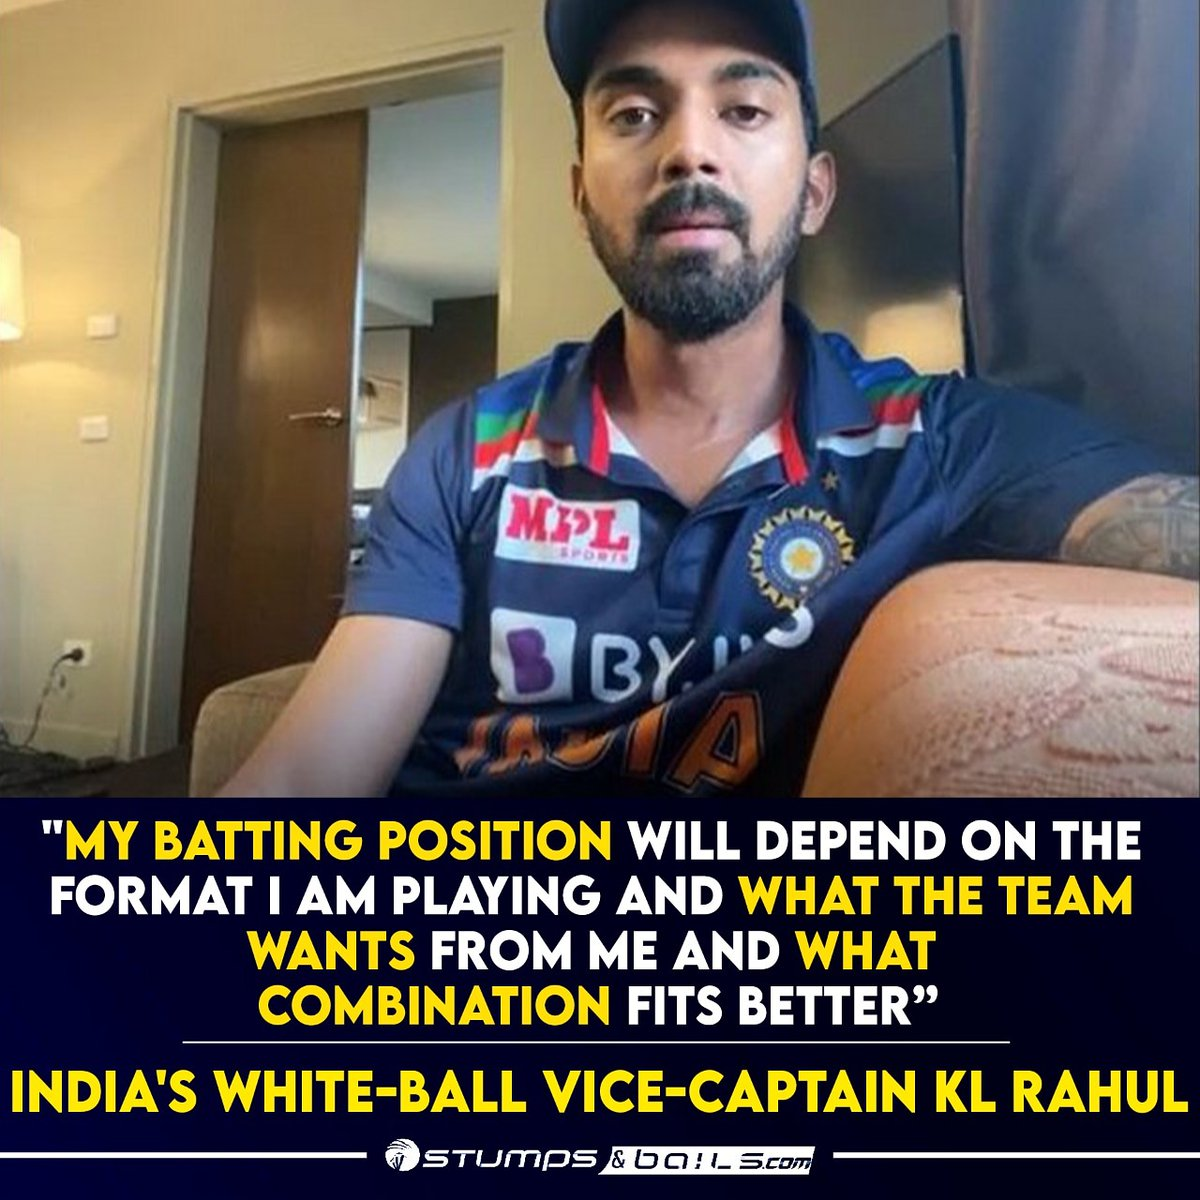 @klrahul11 will be entering with good form against #Australia  Follow us @stumpnbails #INDvsAUS #Indiancricketer #Indiatoaustralia #IndianCricketTeam #Indianteam #KLRahul #Indiatourofaustralia2020 #Indiatourofaustralia #Cricket #Cricketmatch